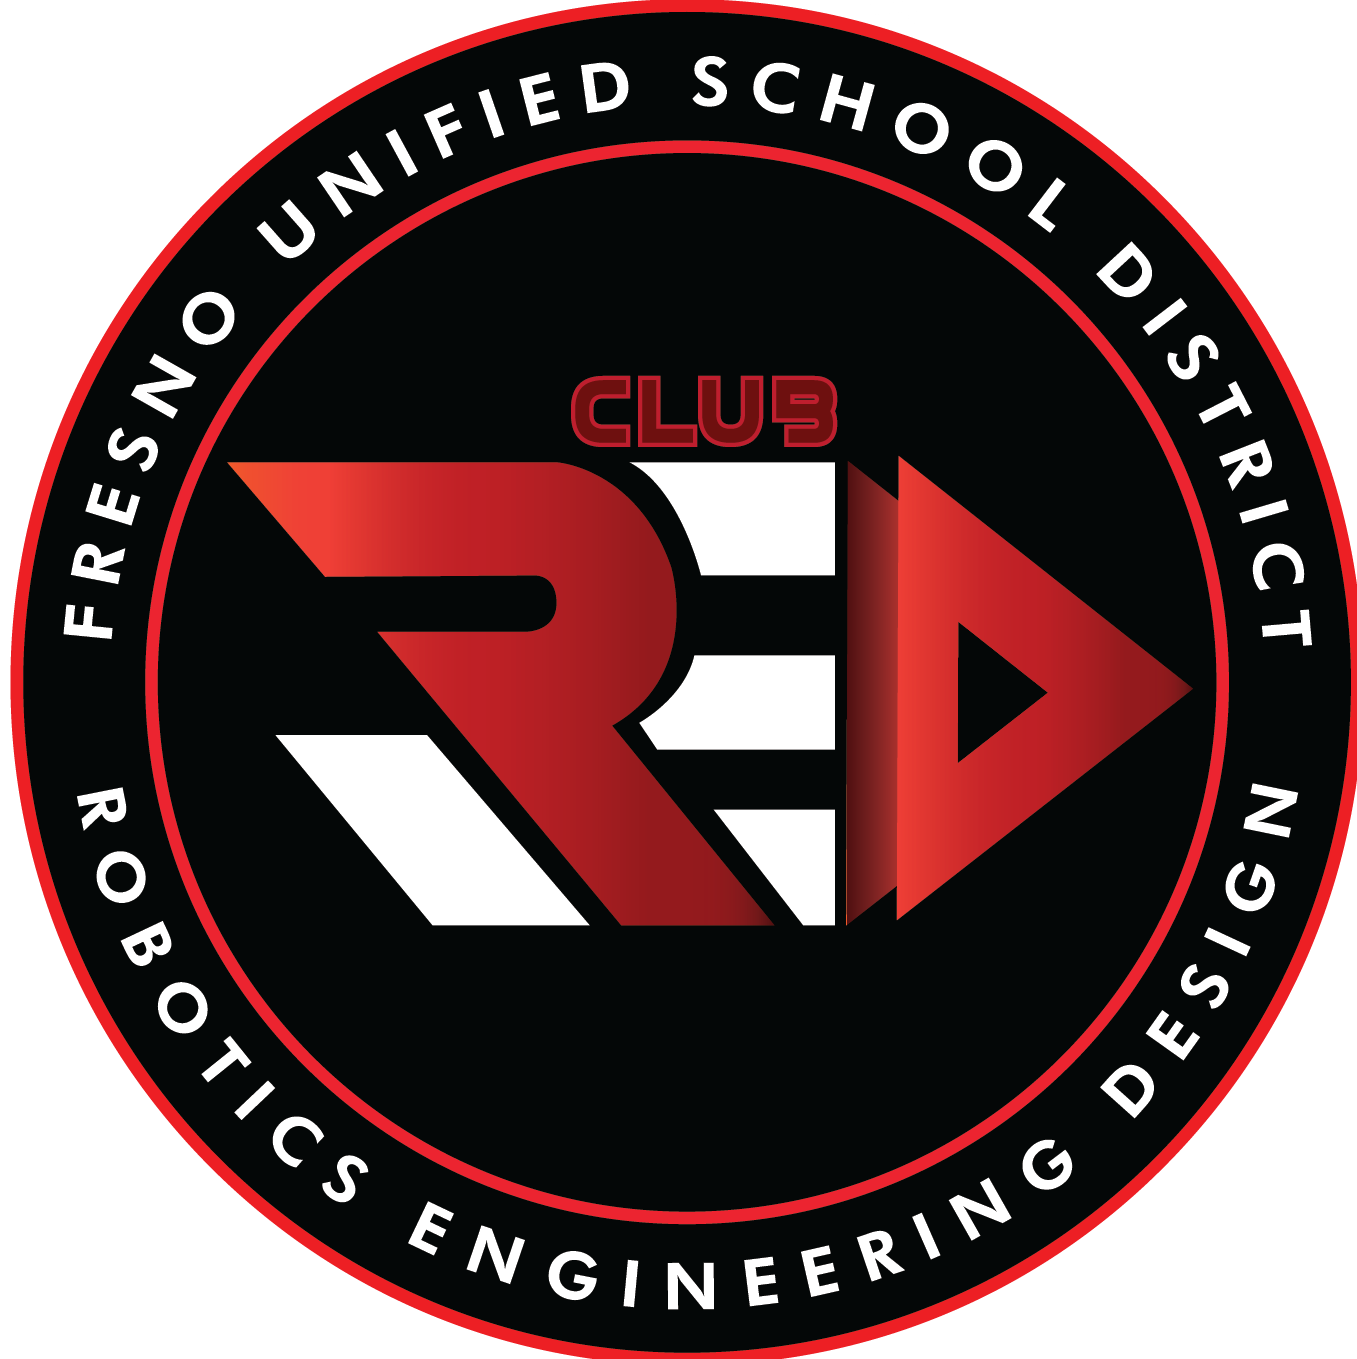 About - Club RED logo